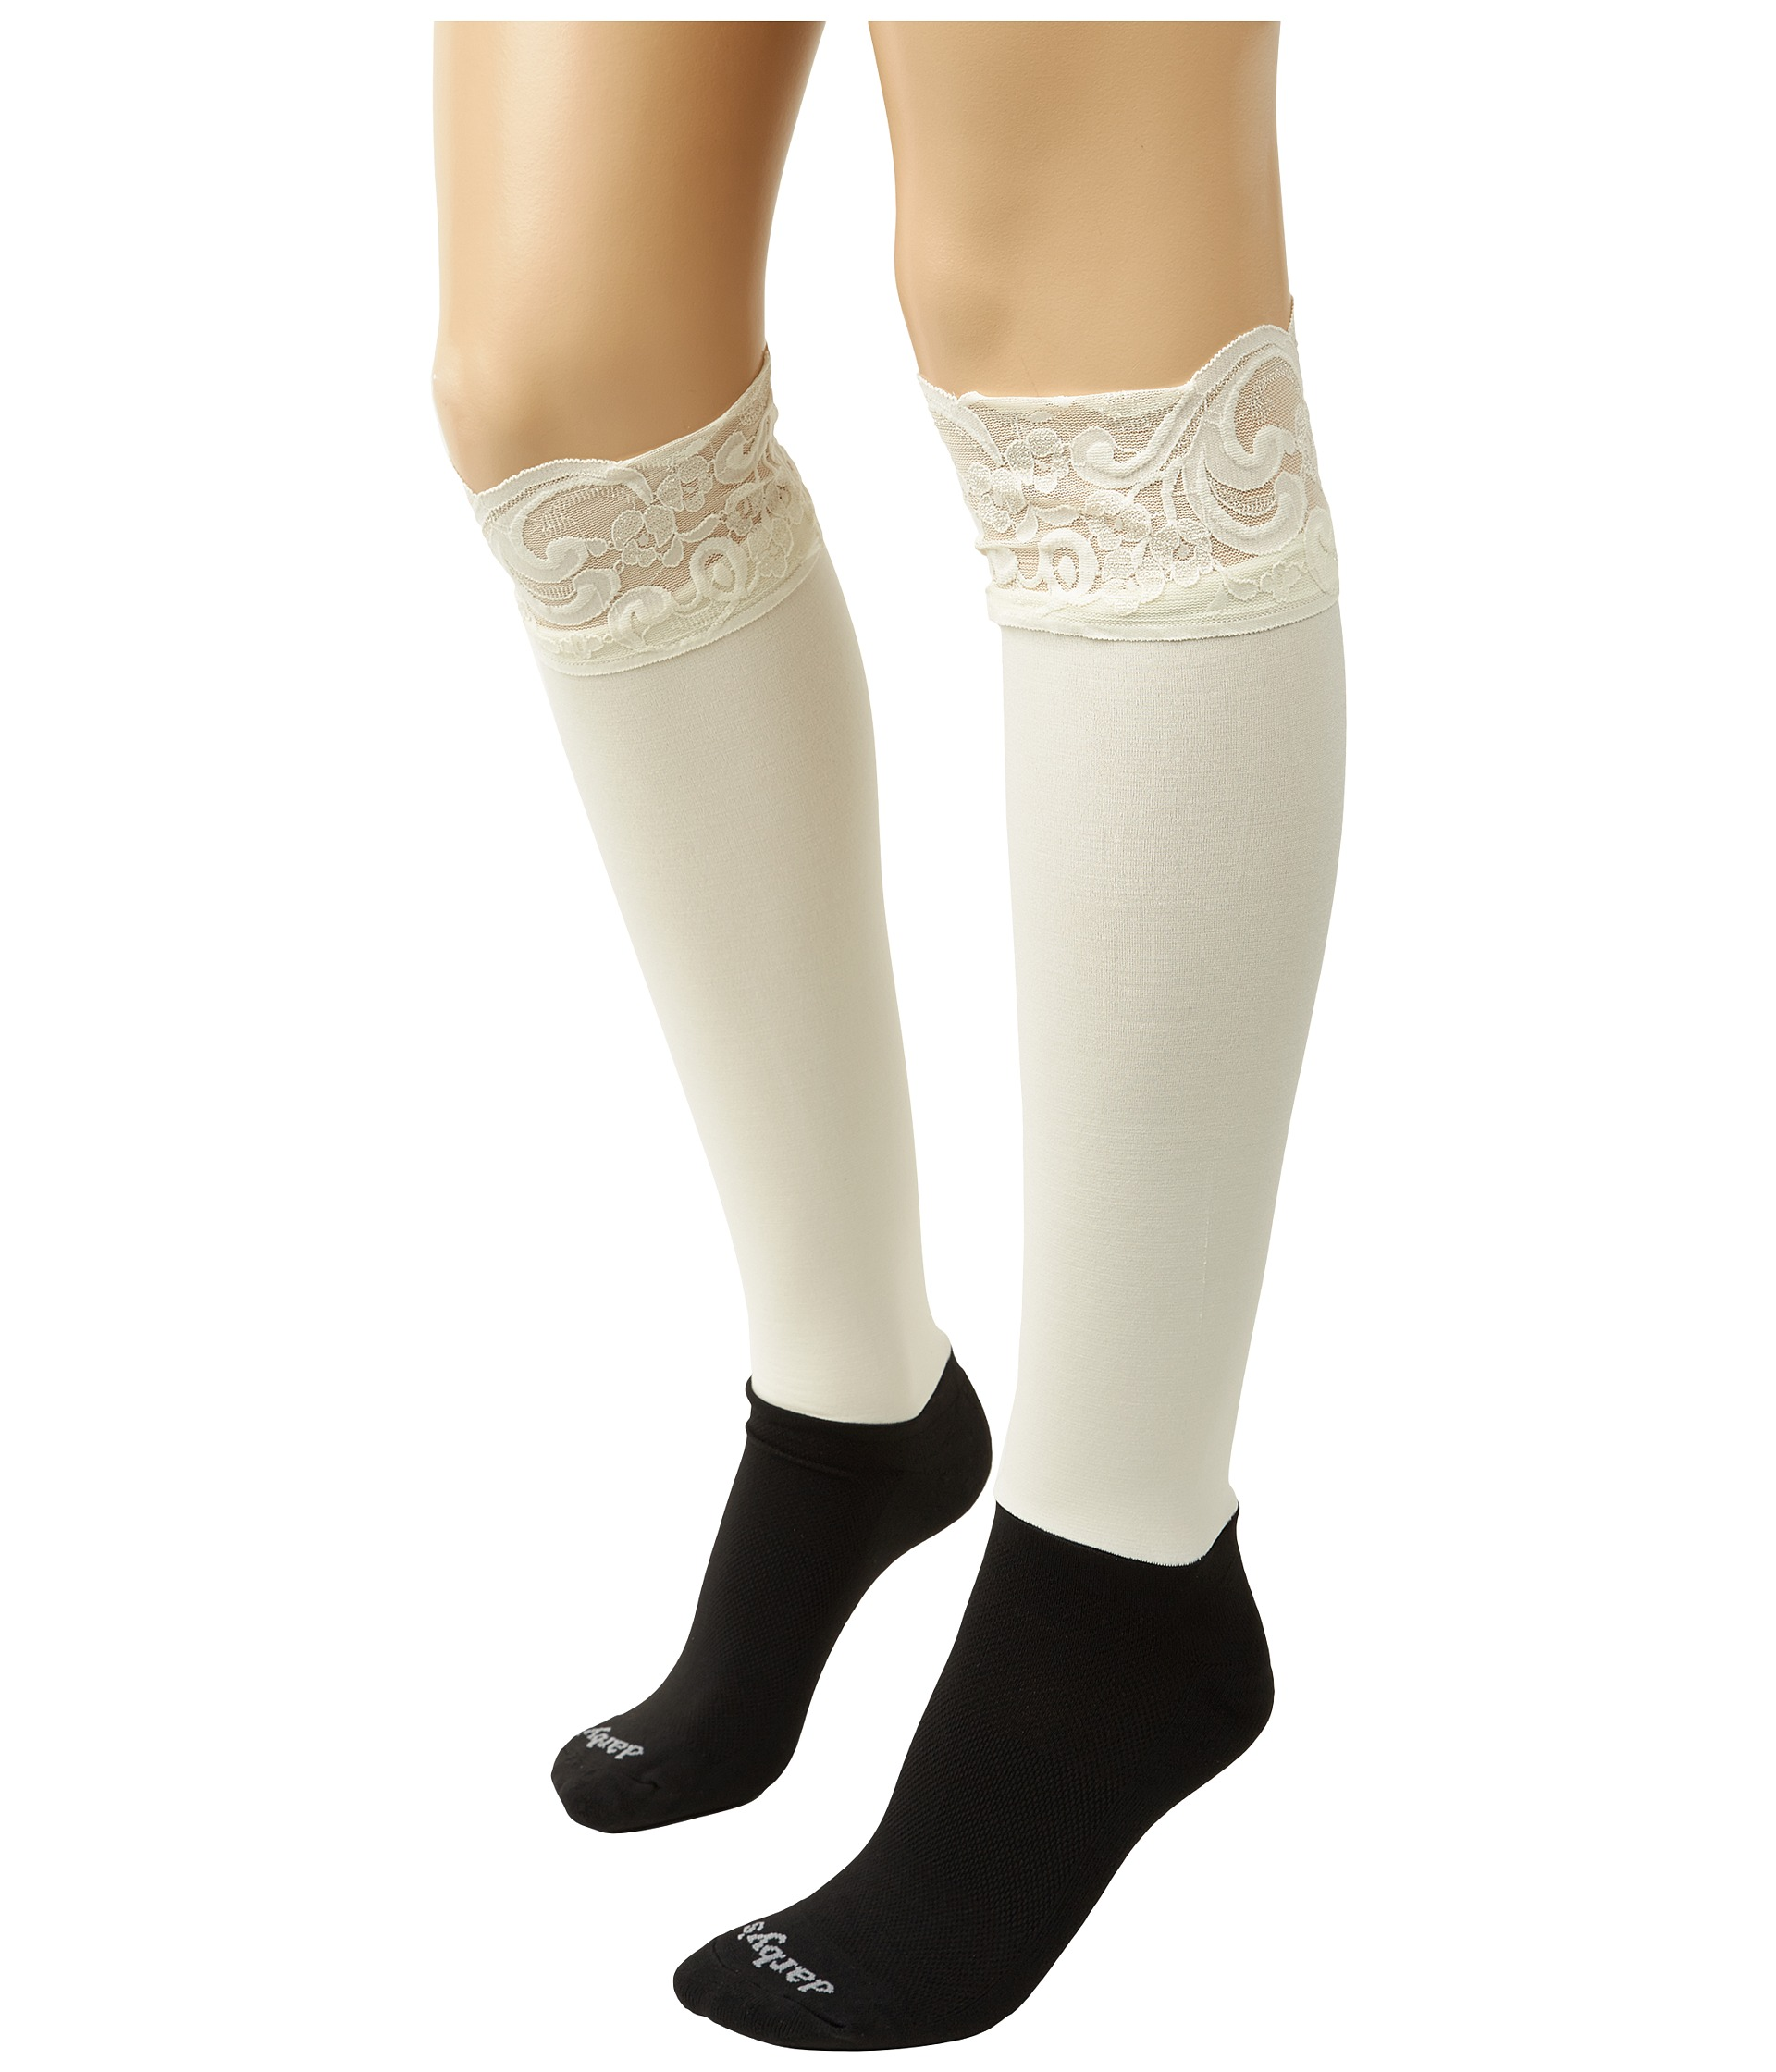 bootights lace darby knee high ankle sock zappos